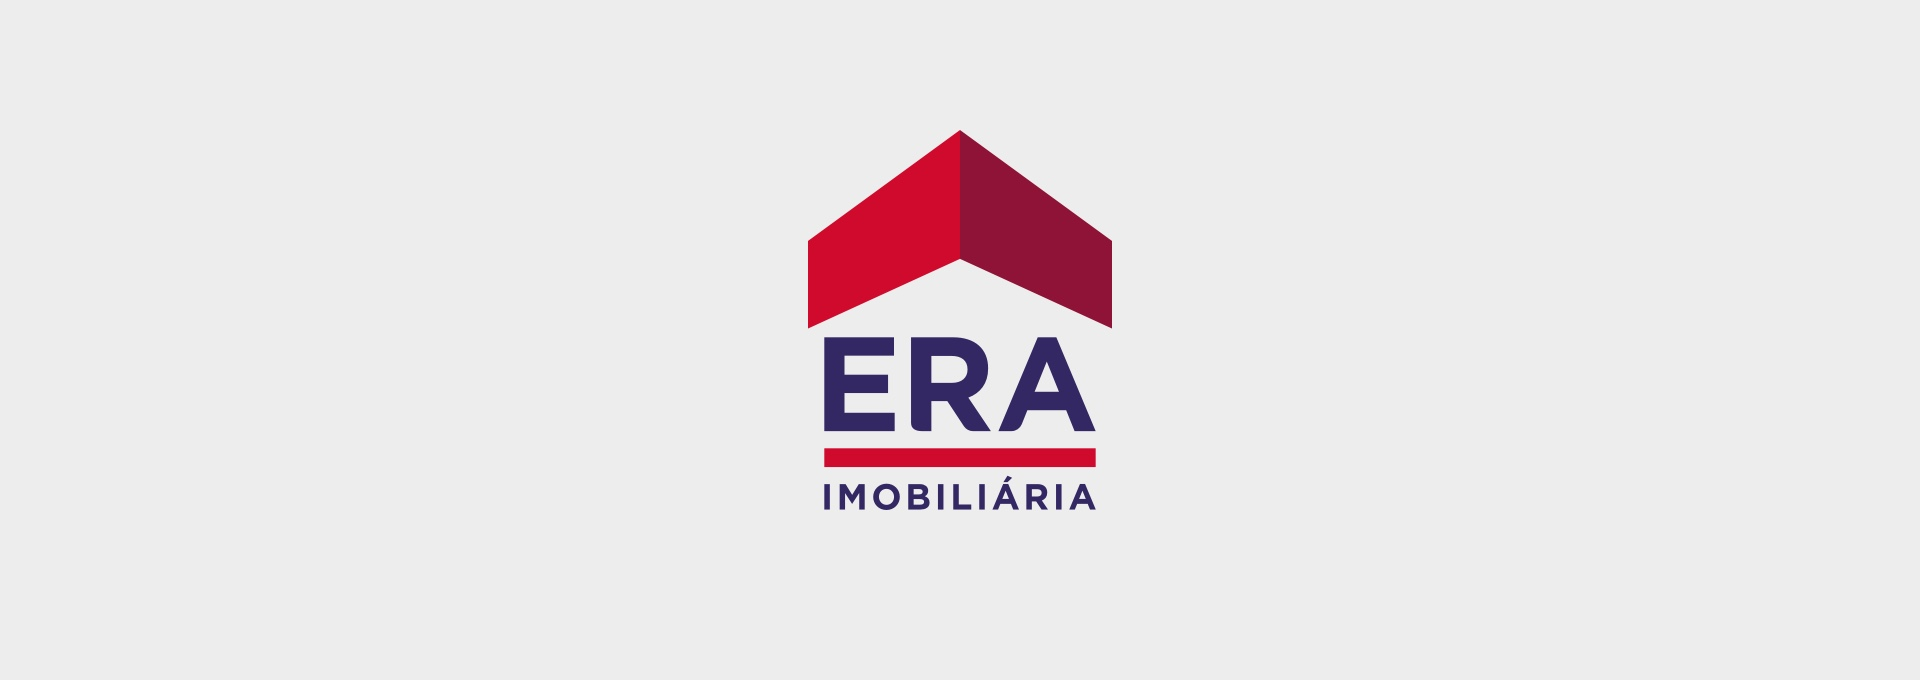 Real estate land / Mortágua, Mortágua